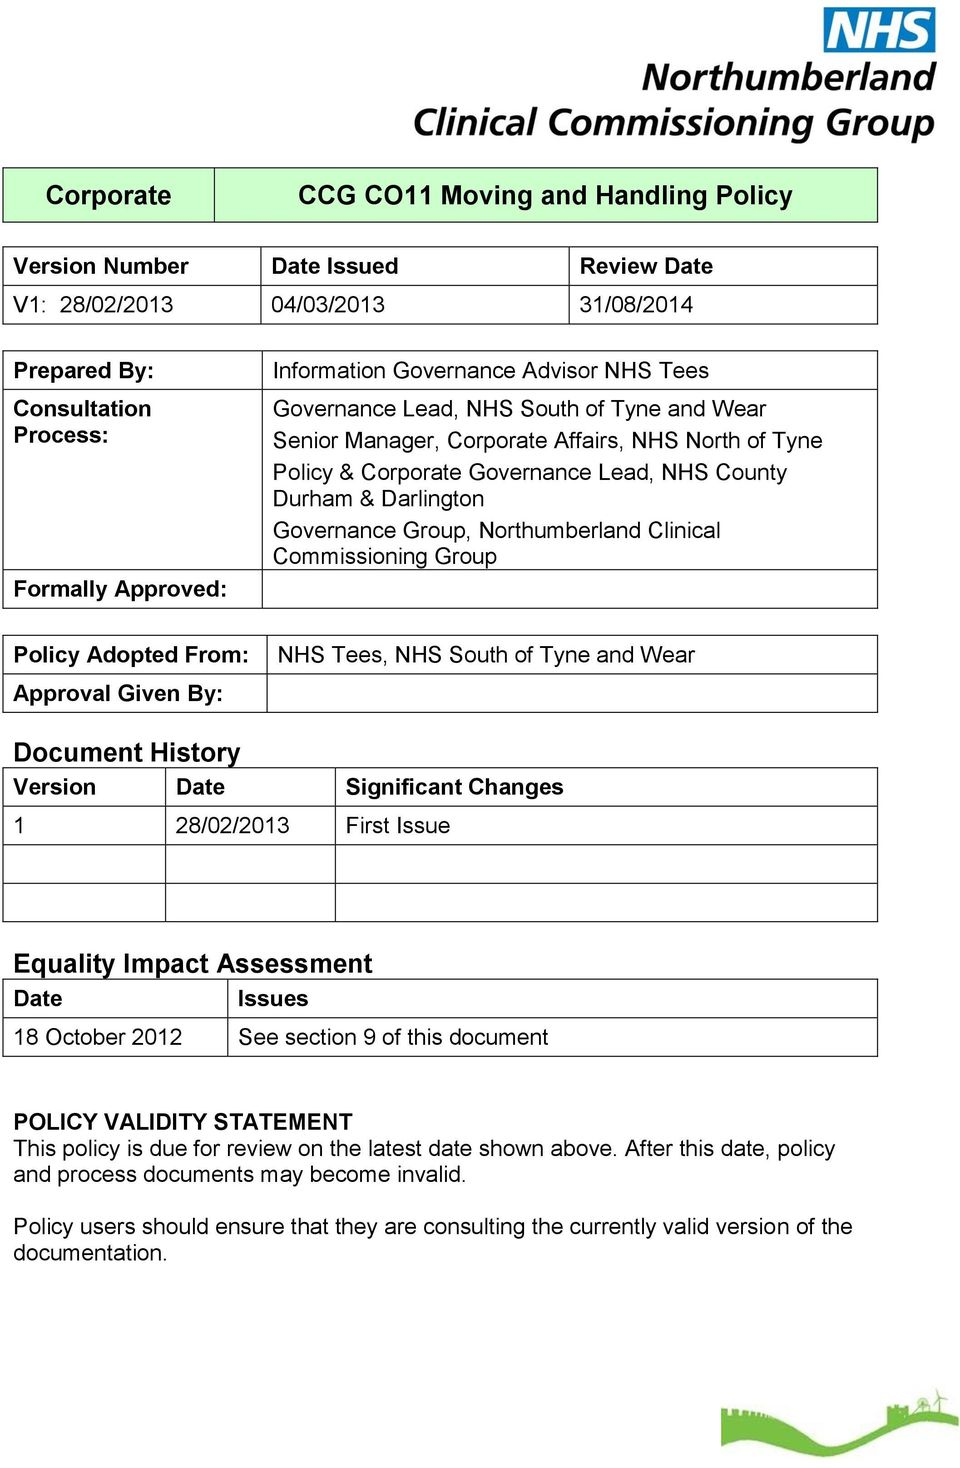 Northumberland Clinical Commissioning Group Policy Adopted From: NHS Tees, NHS South of Tyne and Wear Approval Given By: Document History Version Date Significant Changes 1 28/02/2013 First Issue